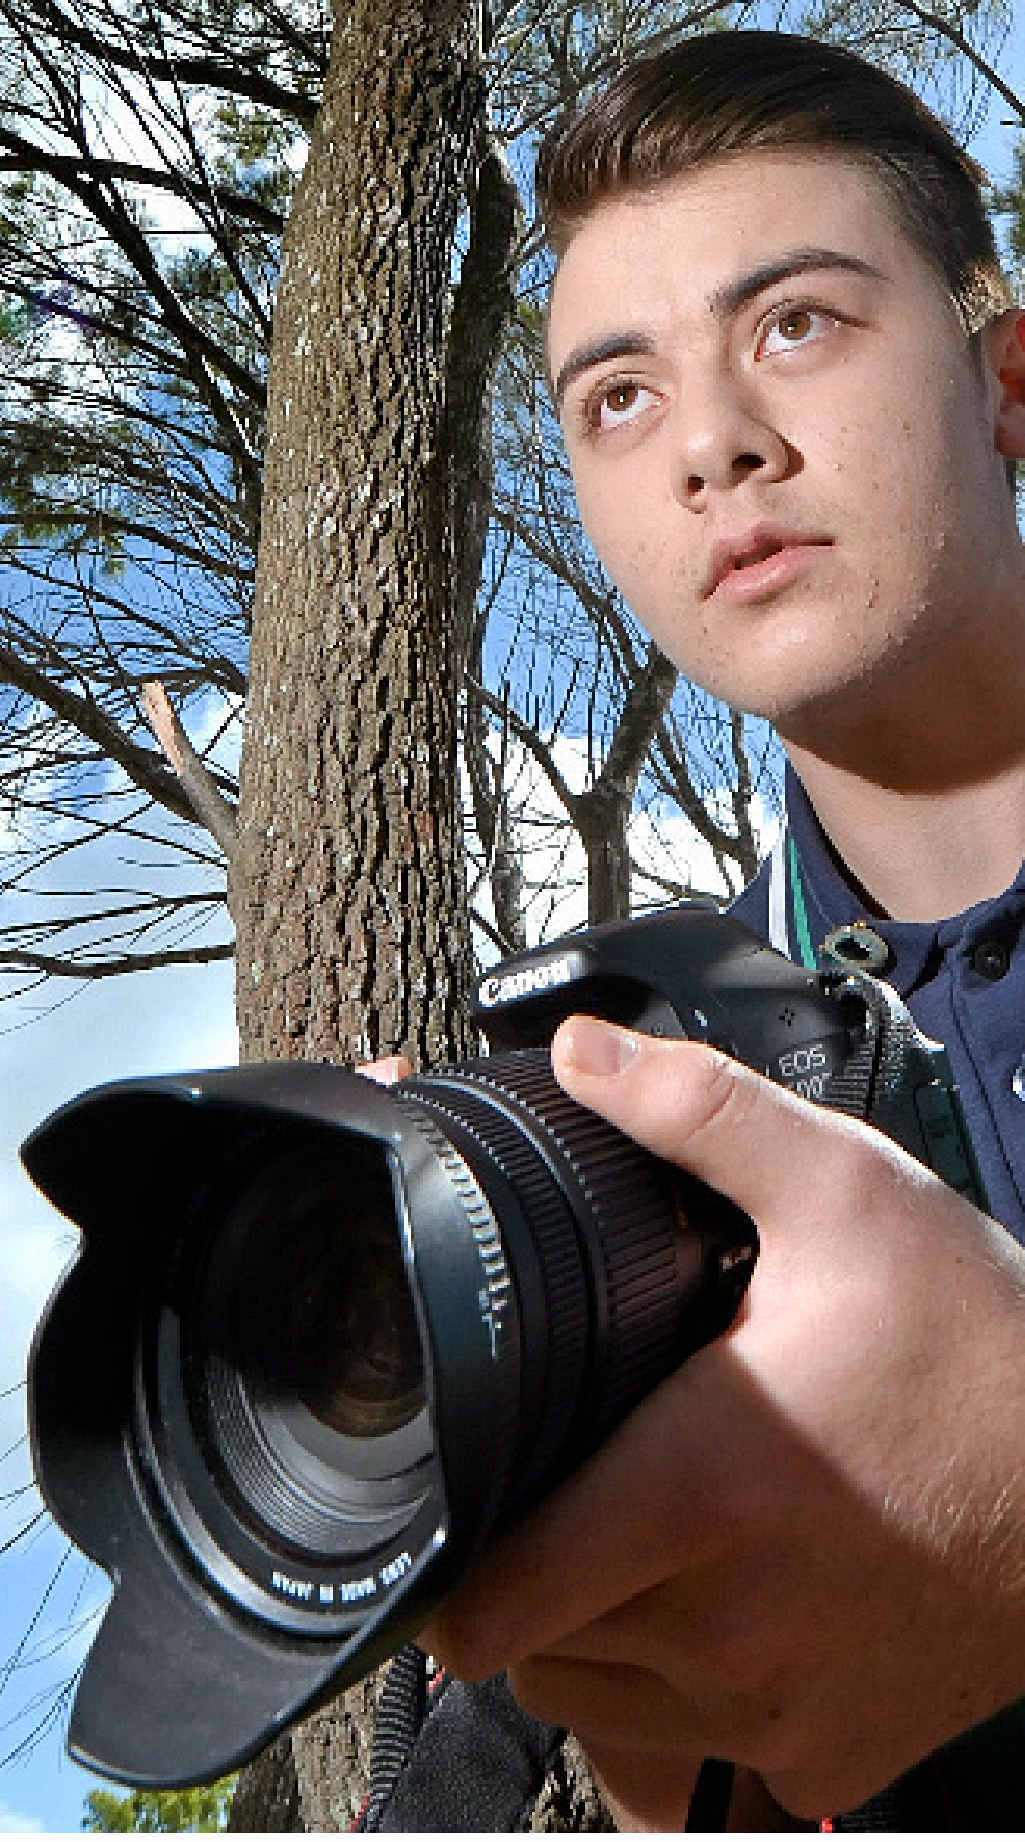 BRIGHT TALENT: Sunshine Beach High School student Jake Lofven is making waves with his filmmaking.